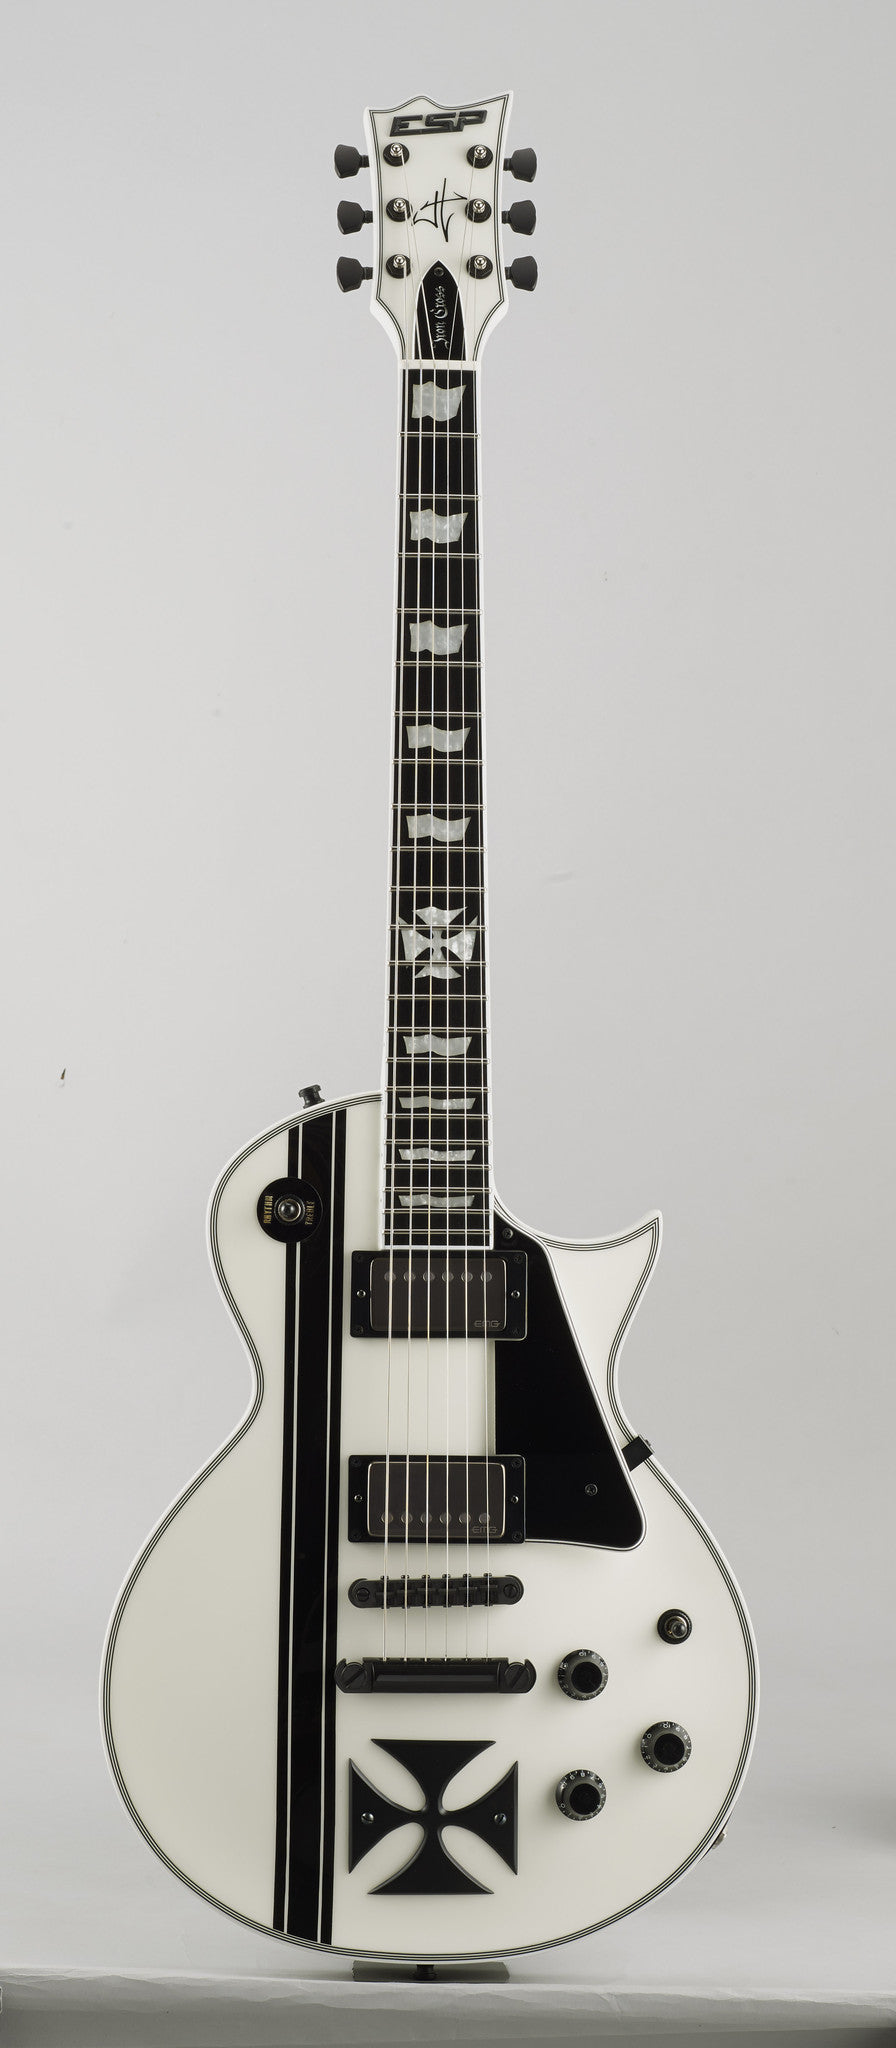 ESP IRON CROSS JAMES HETFIELD HIENDGUITAR.COM - HIENDGUITAR.COM